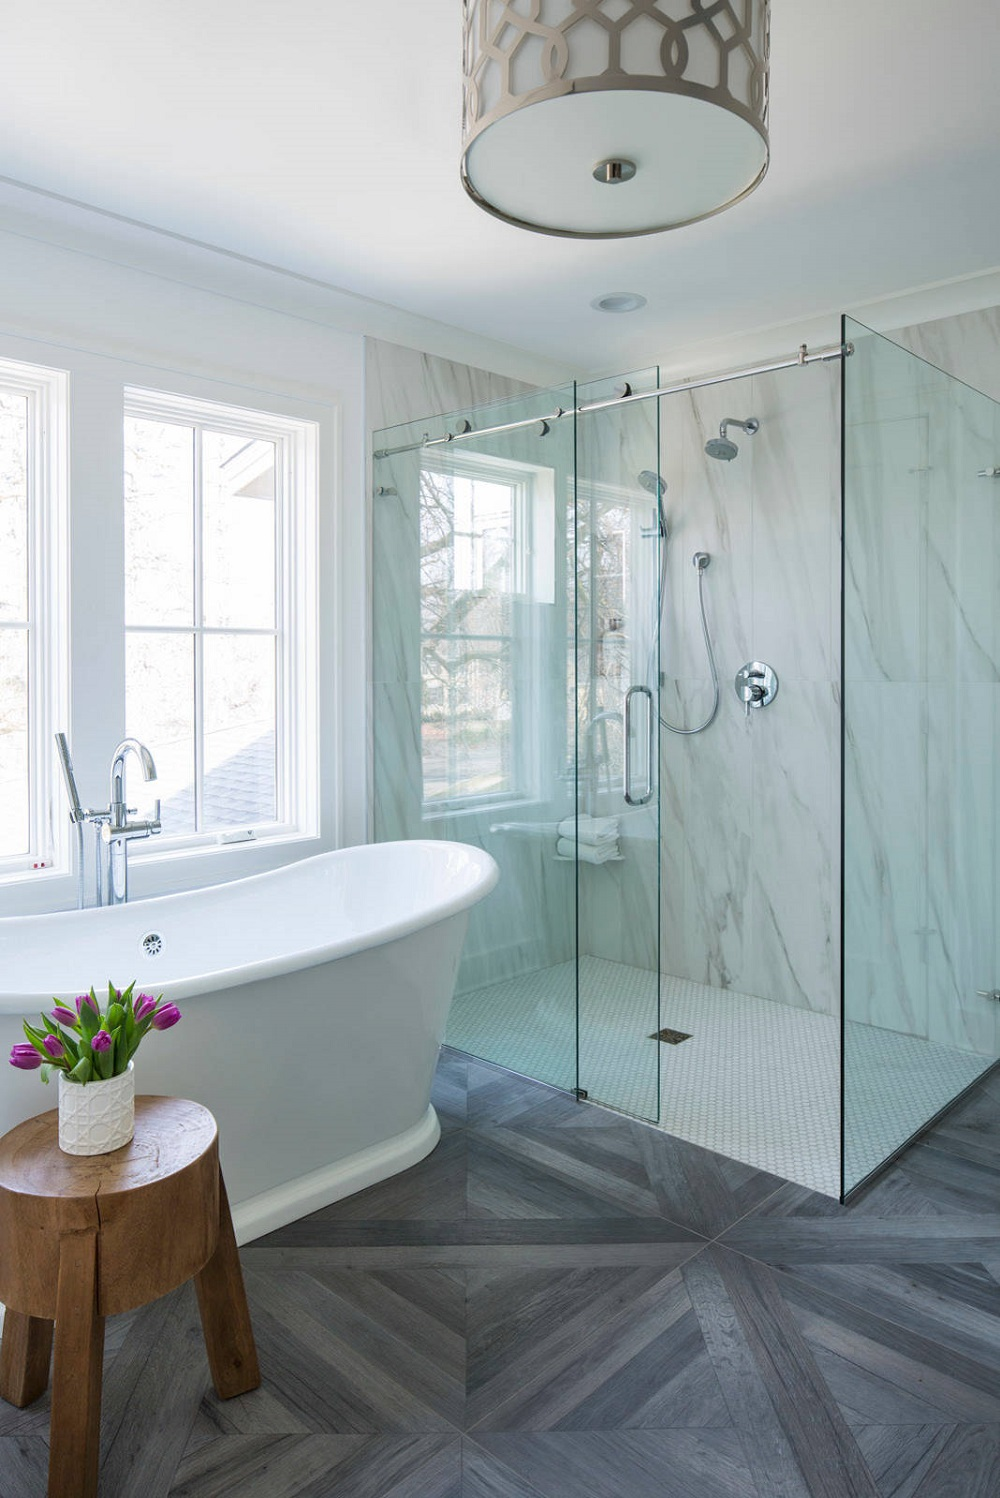 wb1 ideas and tips for walk-in showers (cost, size and more)